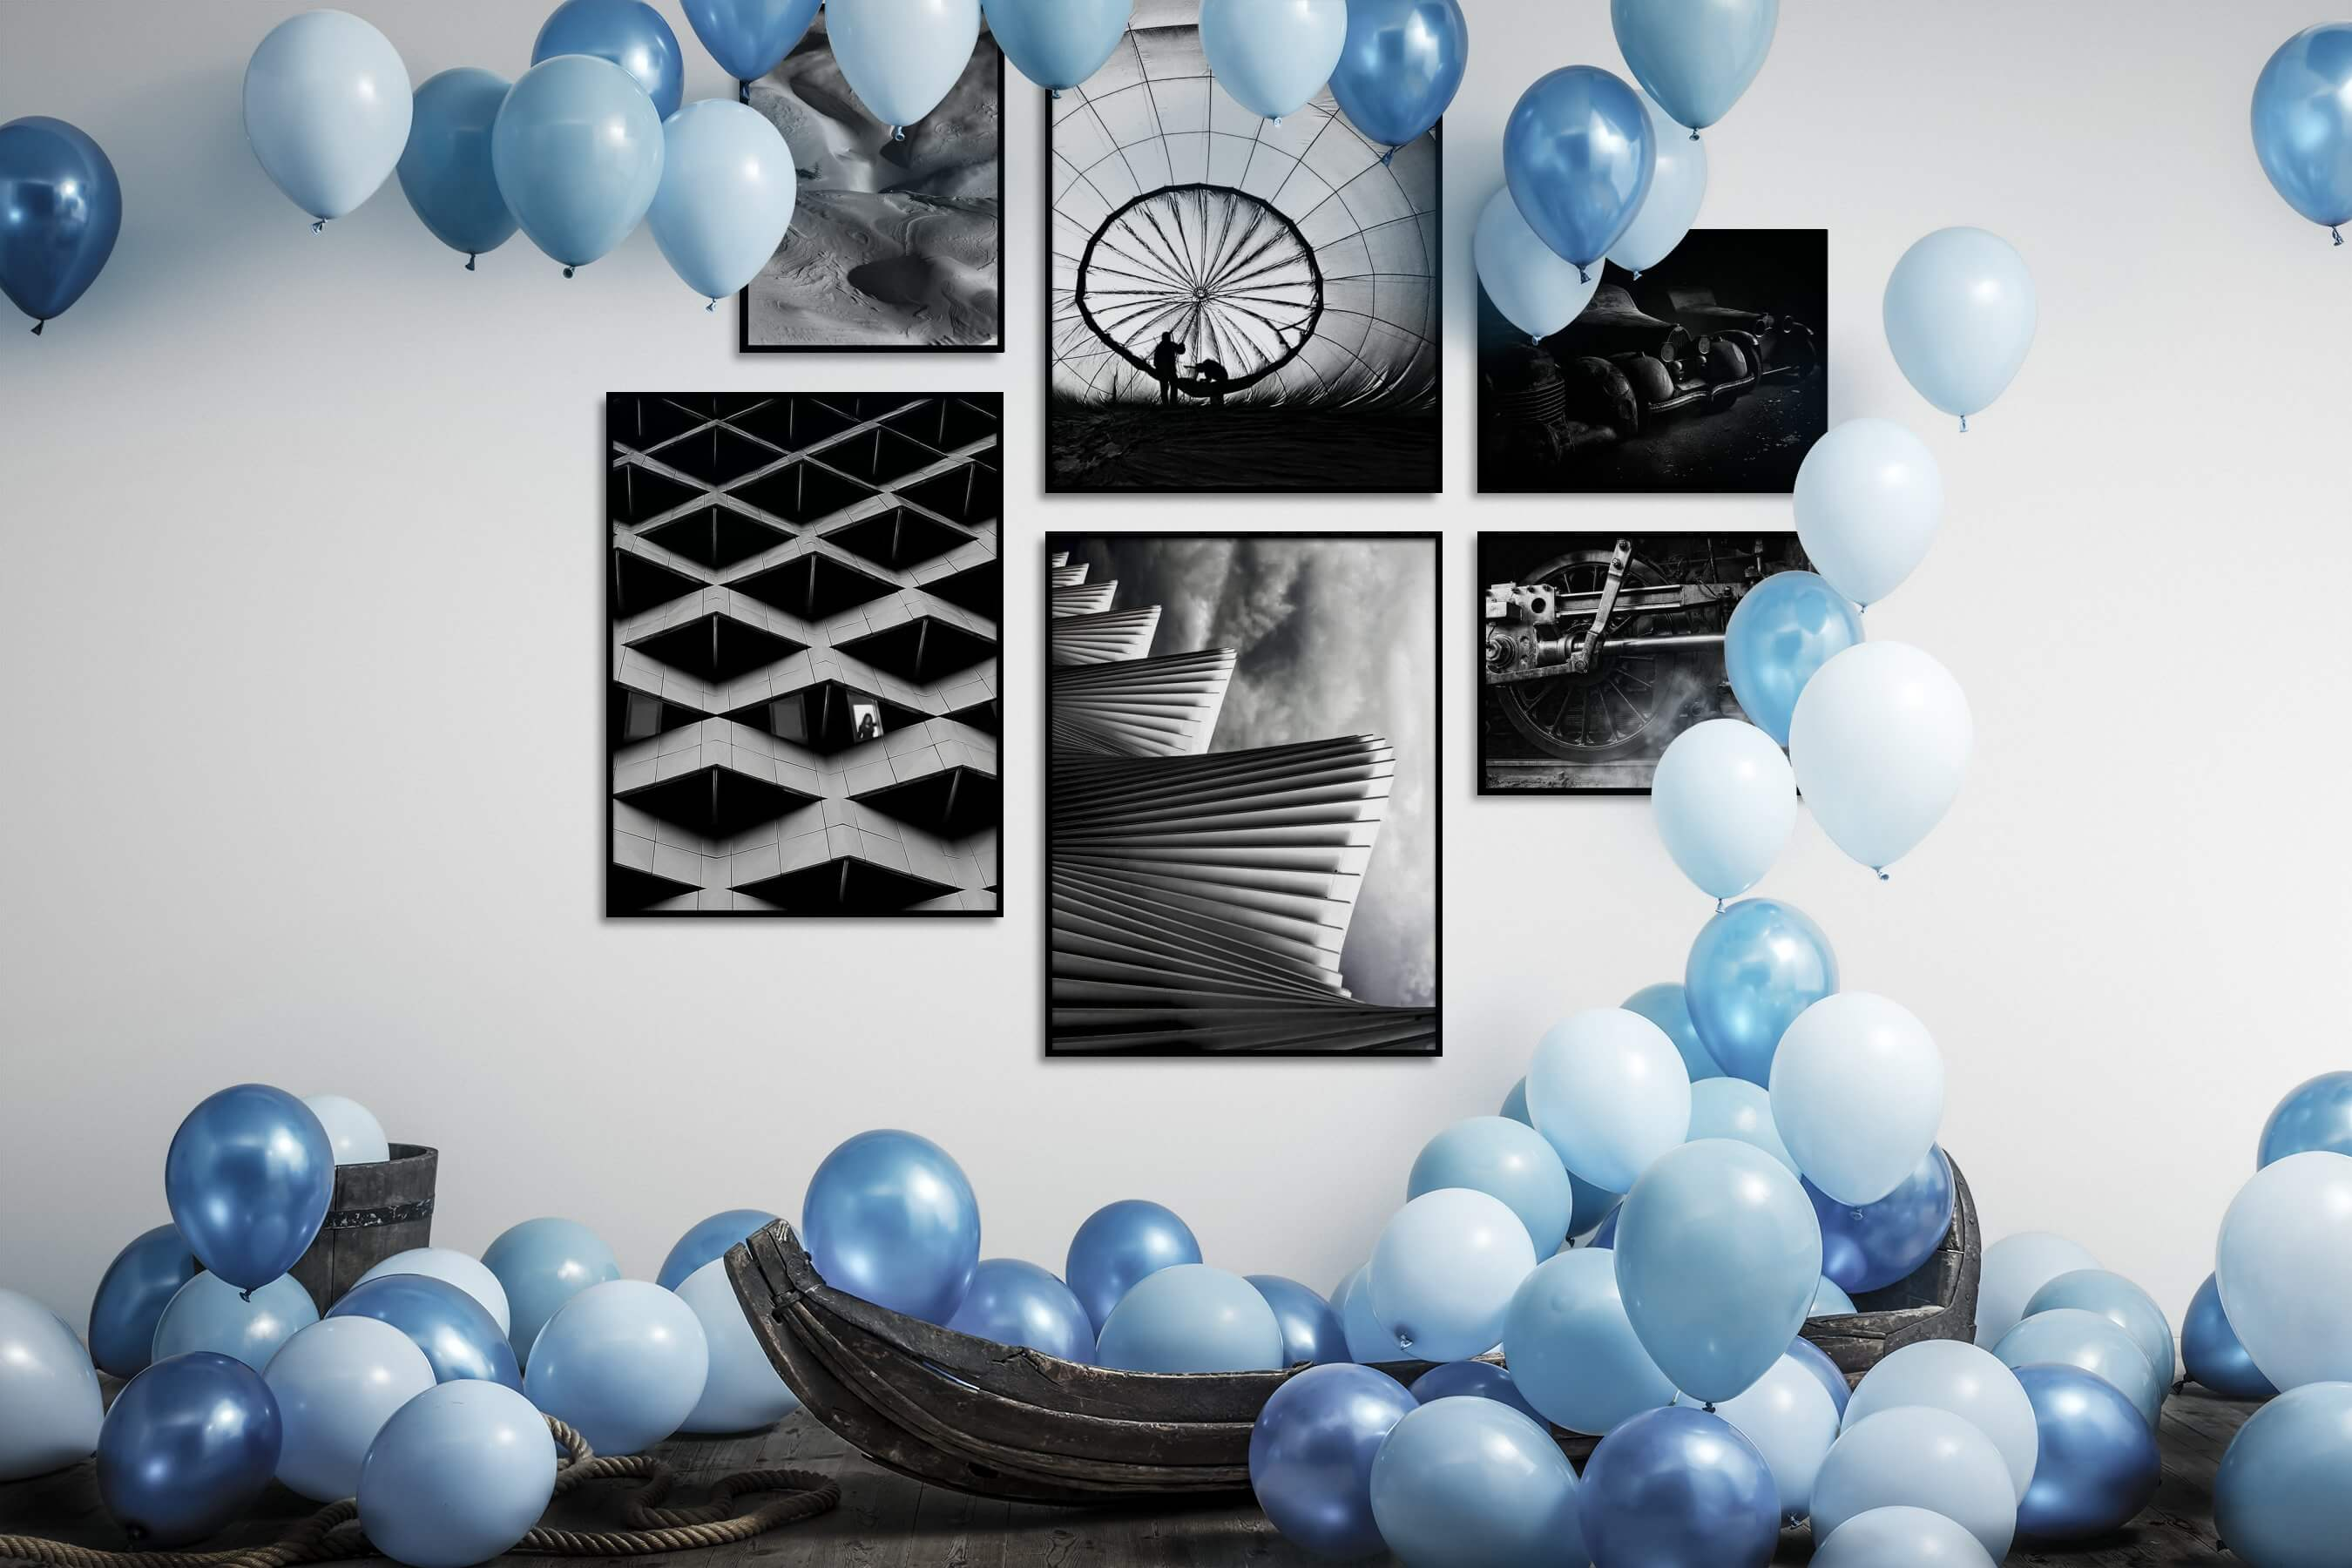 Gallery wall idea with six framed pictures arranged on a wall depicting Black & White, For the Moderate, Nature, For the Maximalist, Dark Tones, For the Minimalist, and Vintage